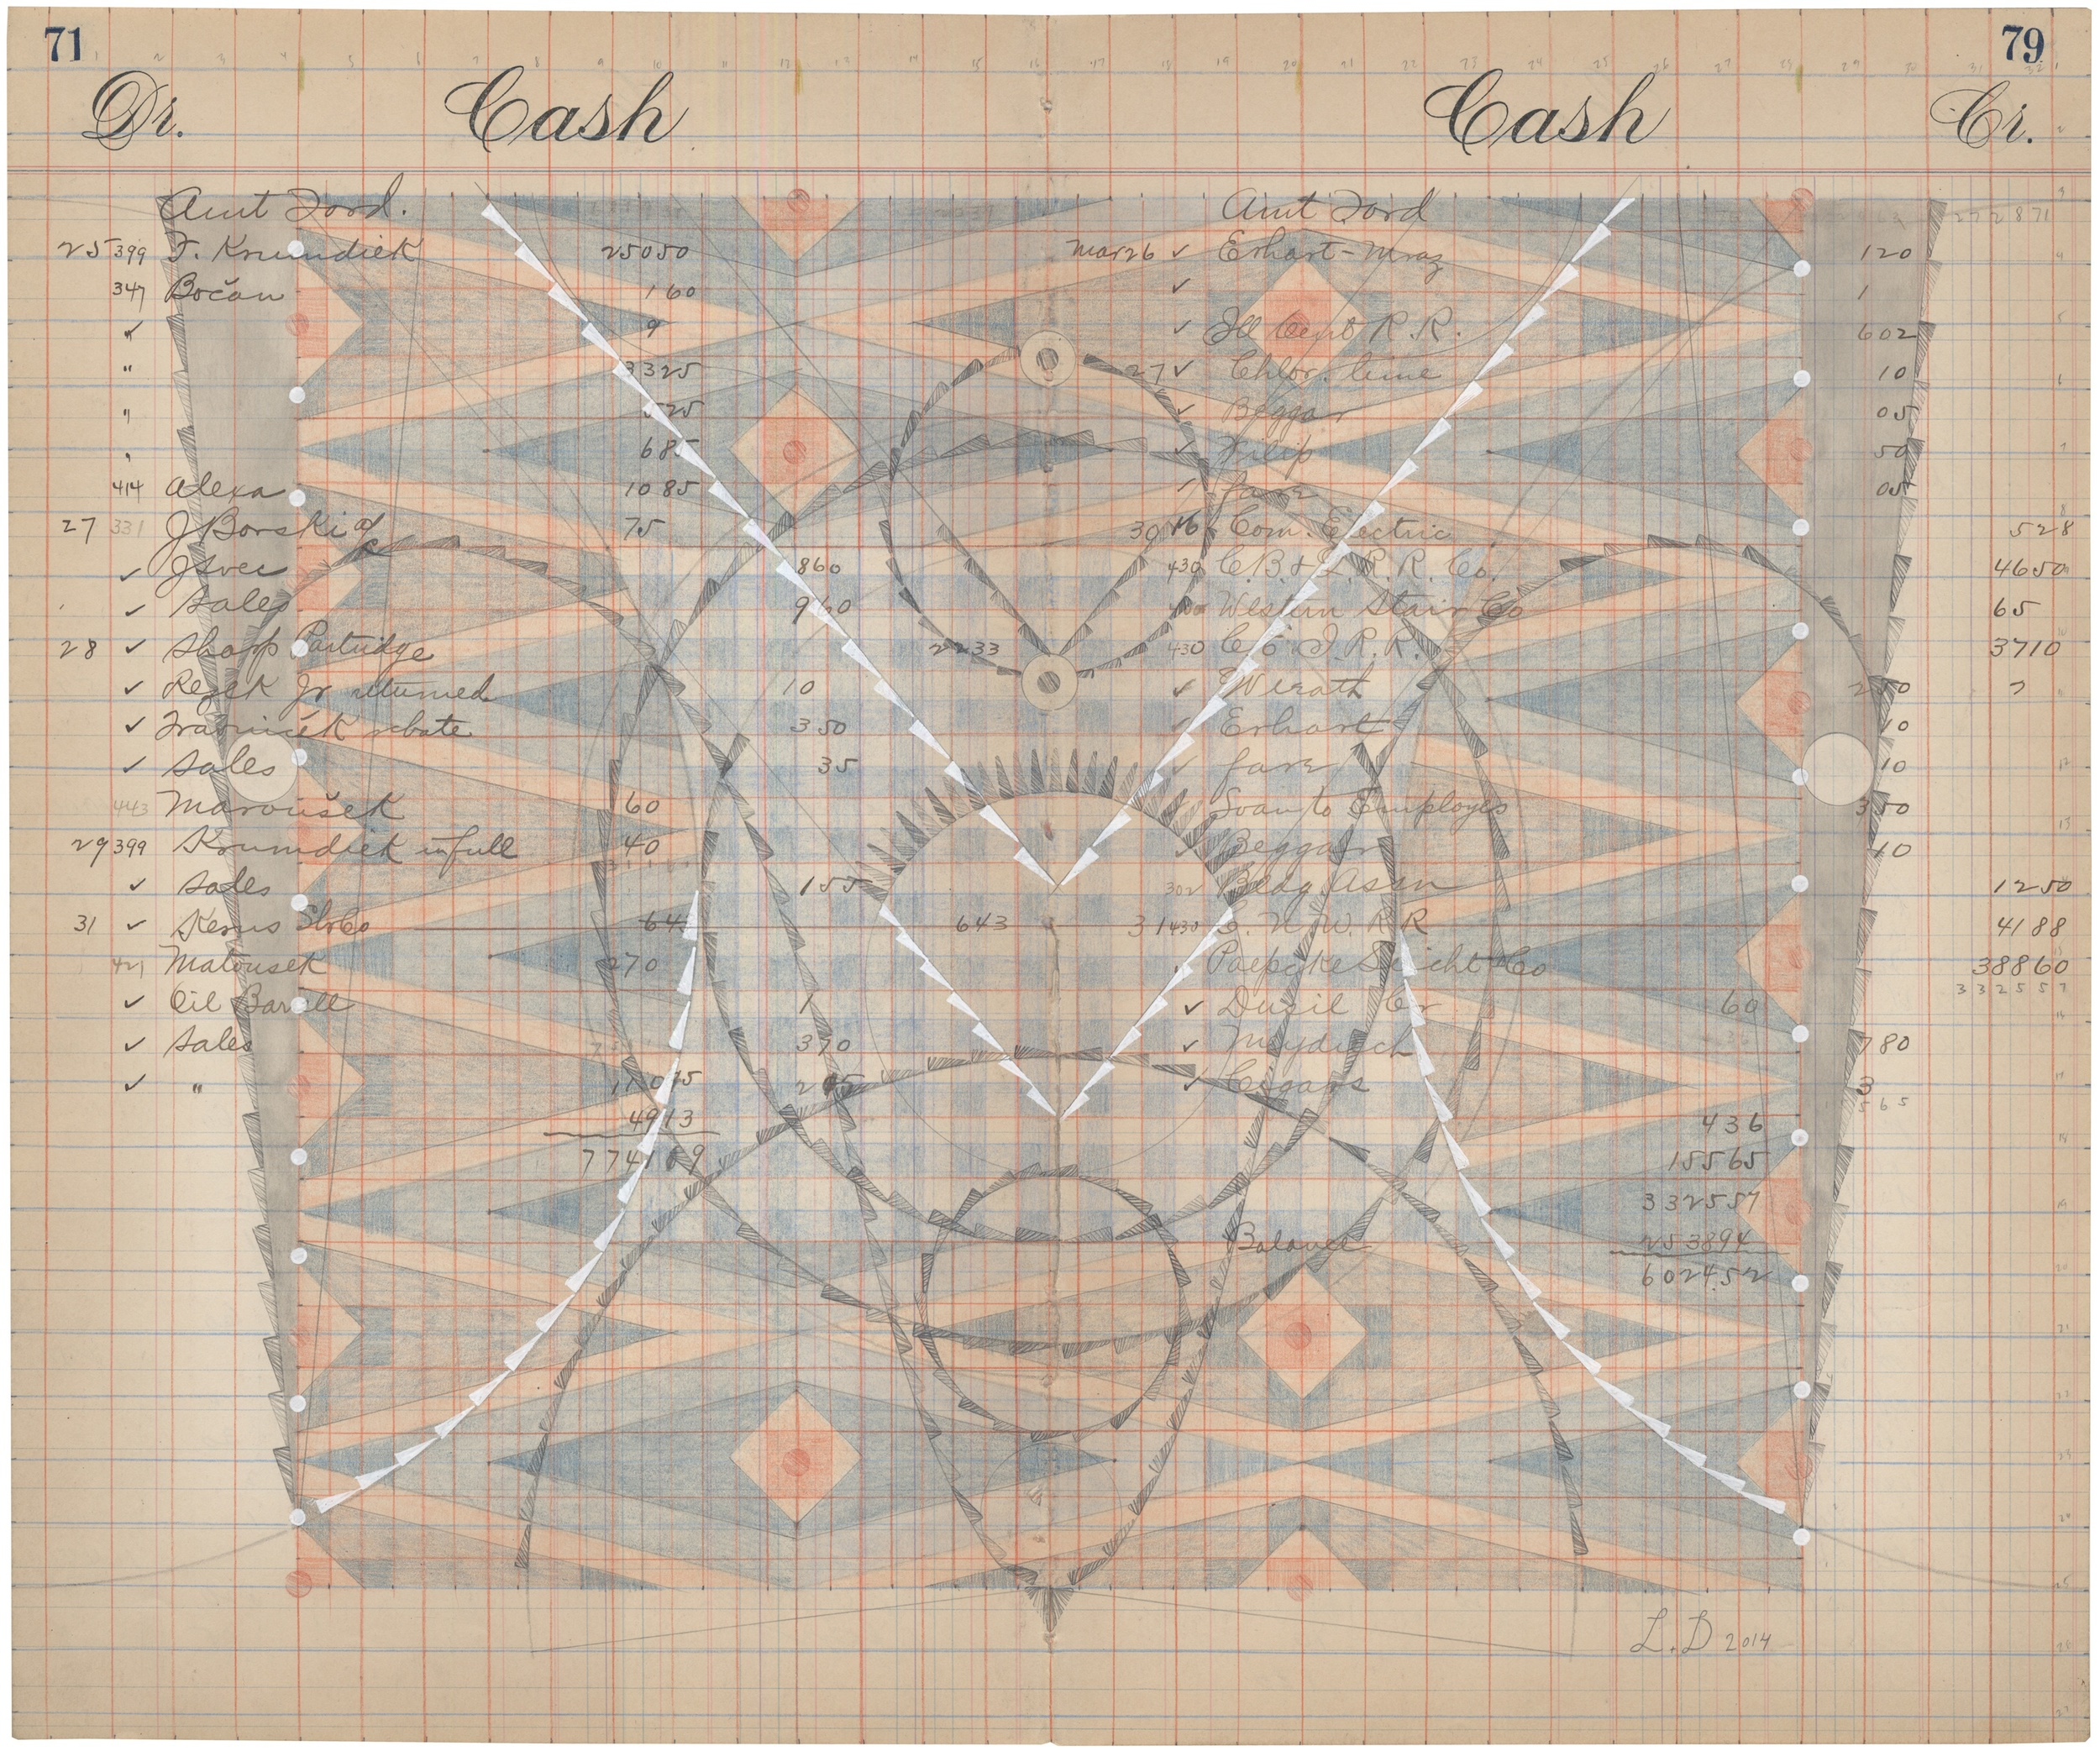 Cash Book No.71-79,Colored Pencil and Graphite on Antique Ledger Book Pages.13.75 x 16.75 inches